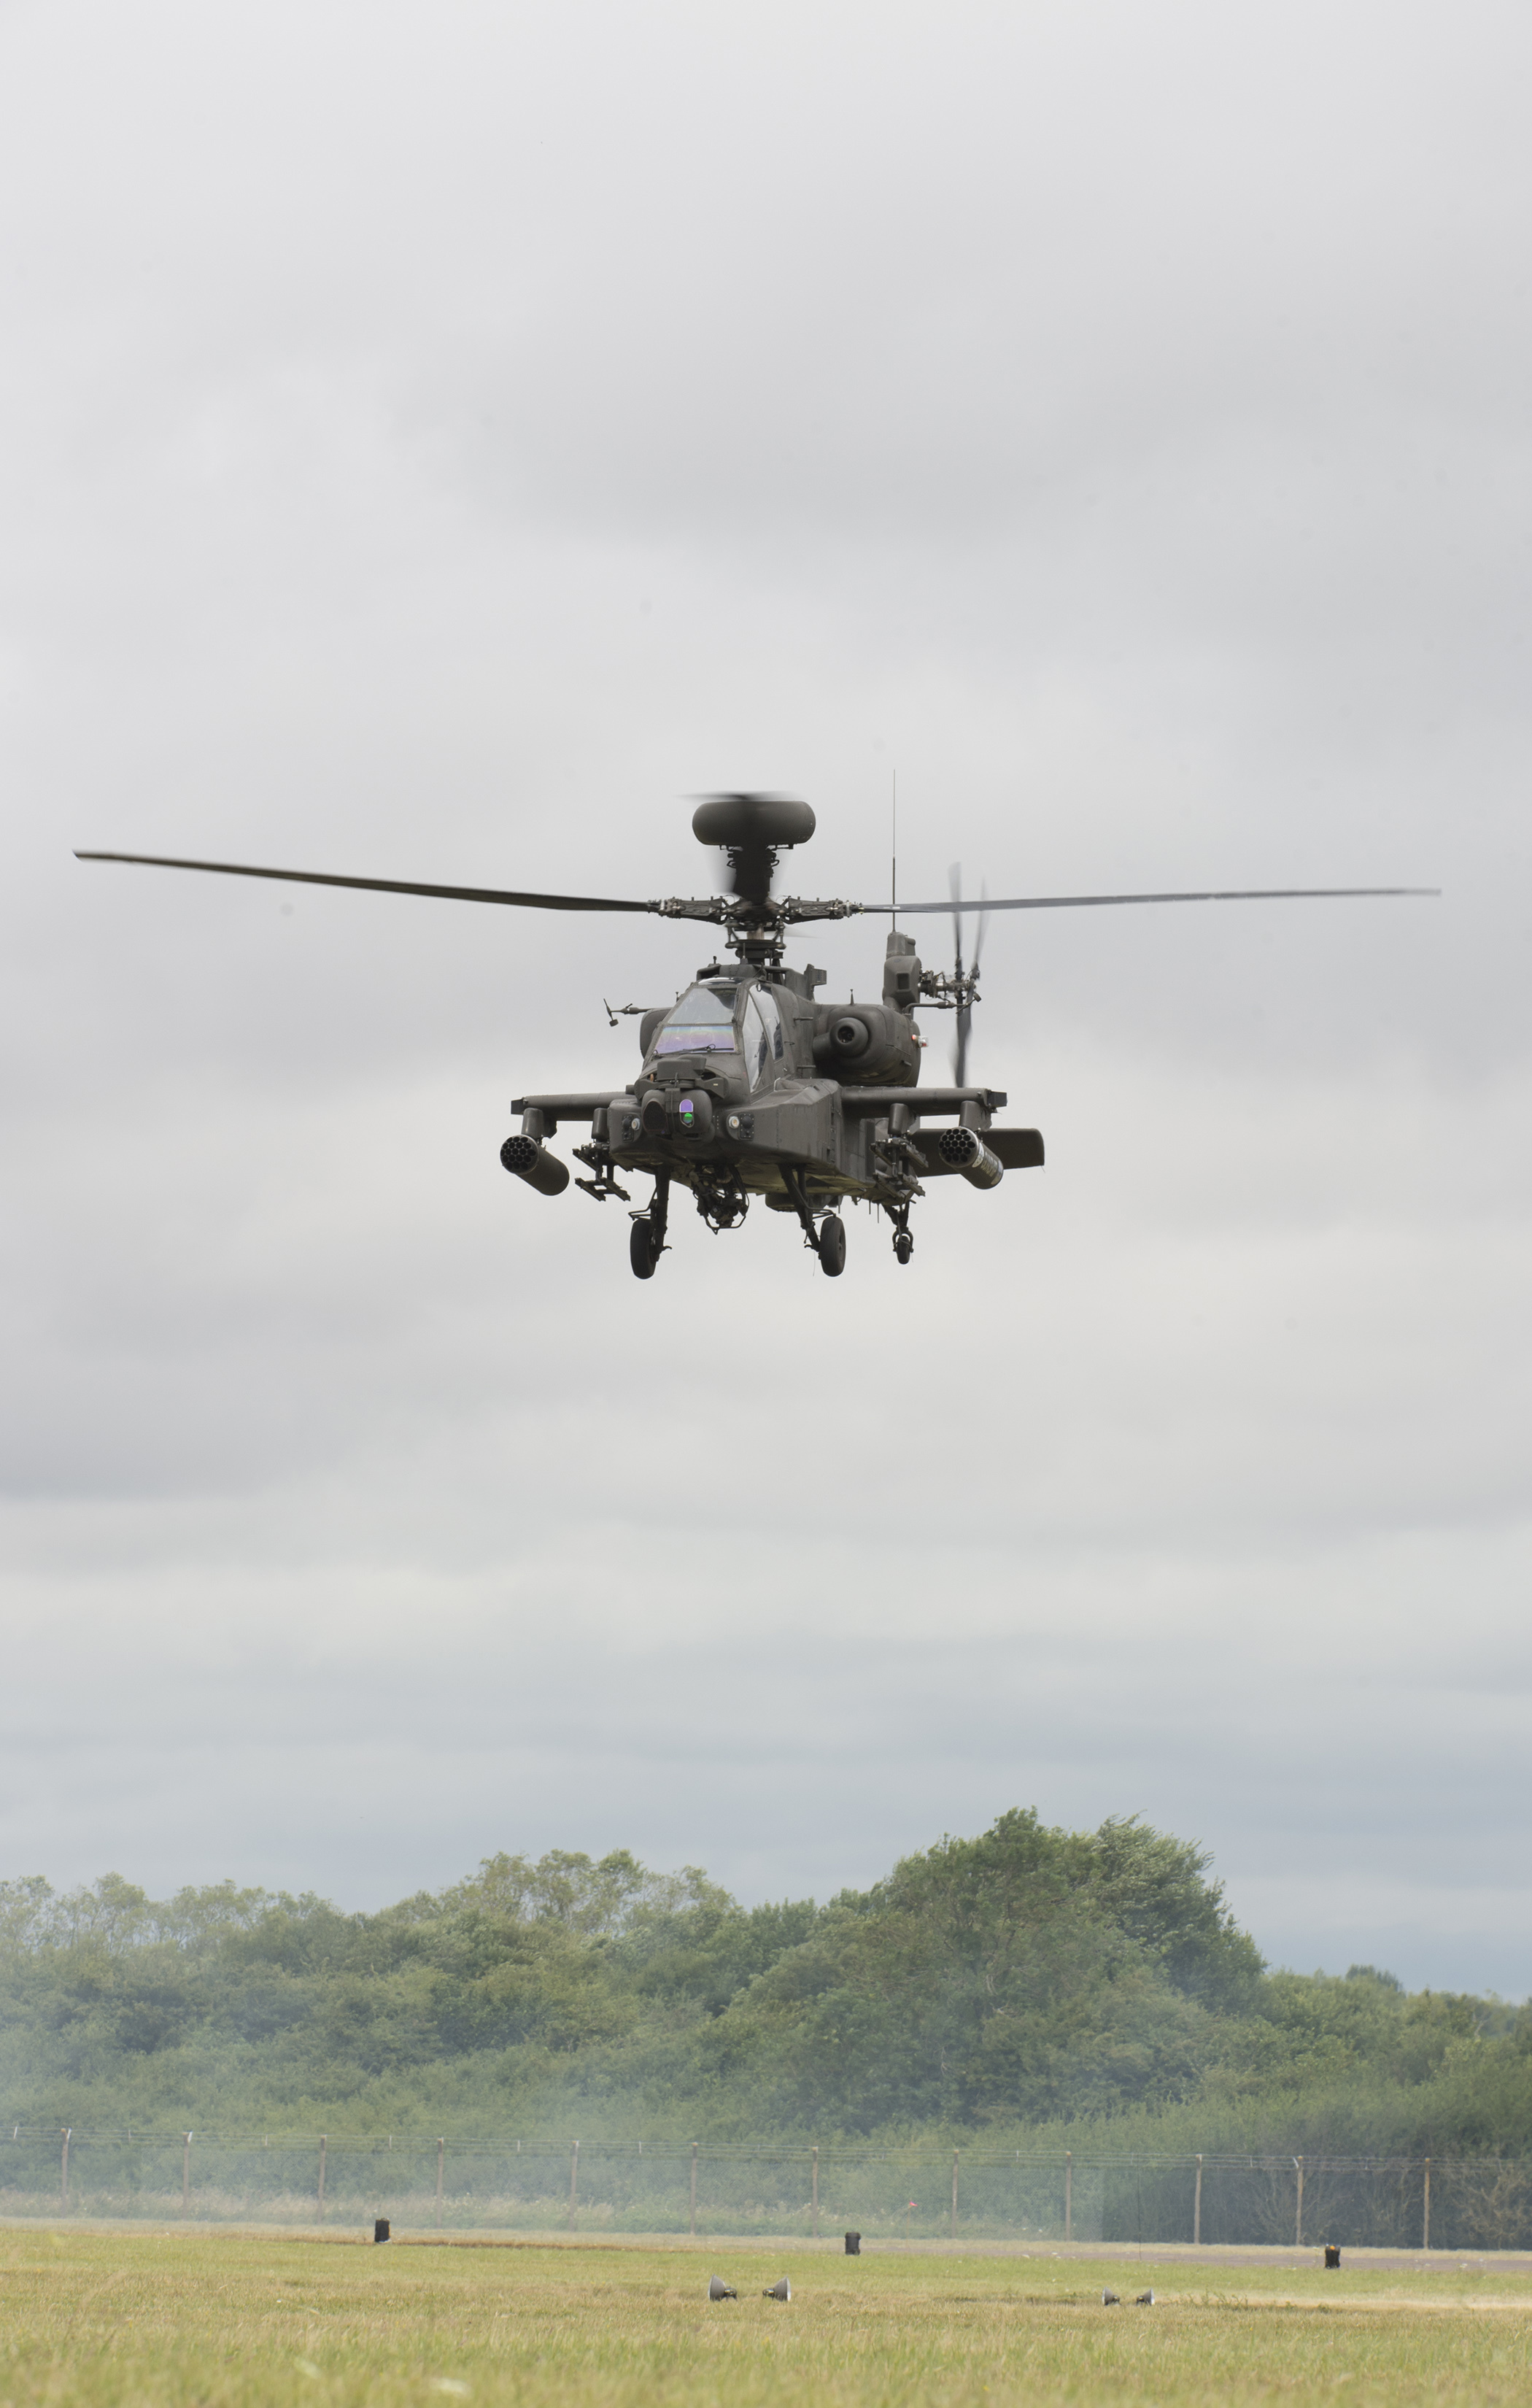 FAIRFORD, United Kingdom – A Royal Air Force Westland WAH-64D Apache helicopter demonstrates its combat capabilities for spectators during the 2017 Royal International Air Tattoo (RIAT) located at RAF Fairford, United Kingdom, on July 16, 2017. This year commemorates the U.S. Air Force's 70th Anniversary which was highlighted during RIAT by displaying its lineage and advancements in military aircraft. (U.S. Air Force Photo by Tech. Sgt. Brian Kimball)